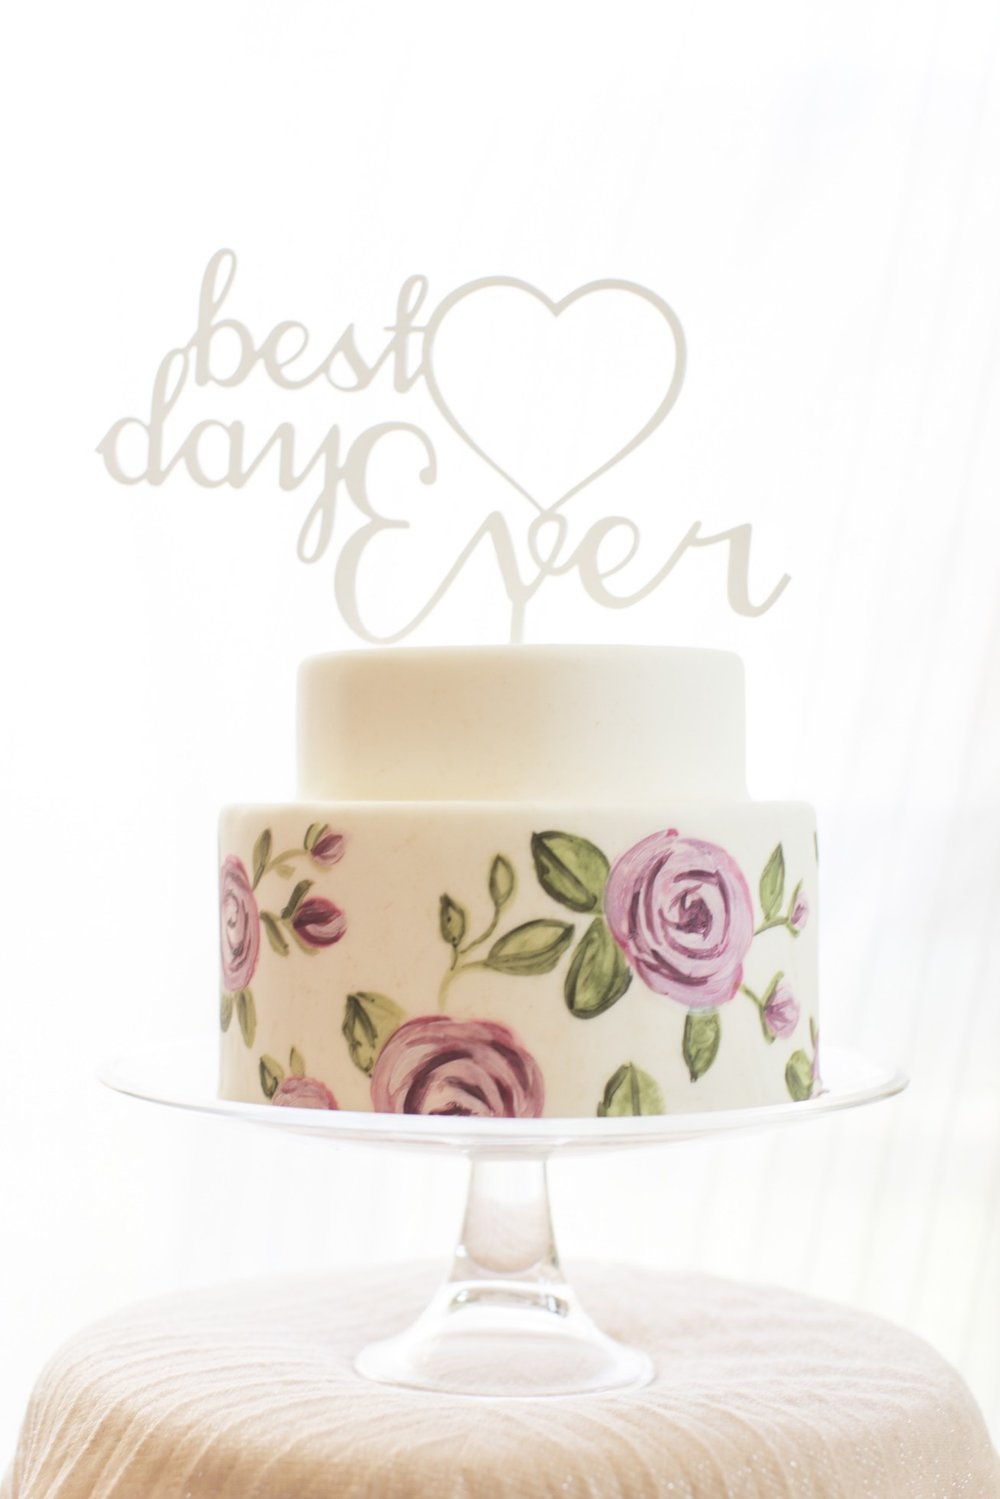 painted wedding cake.jpg